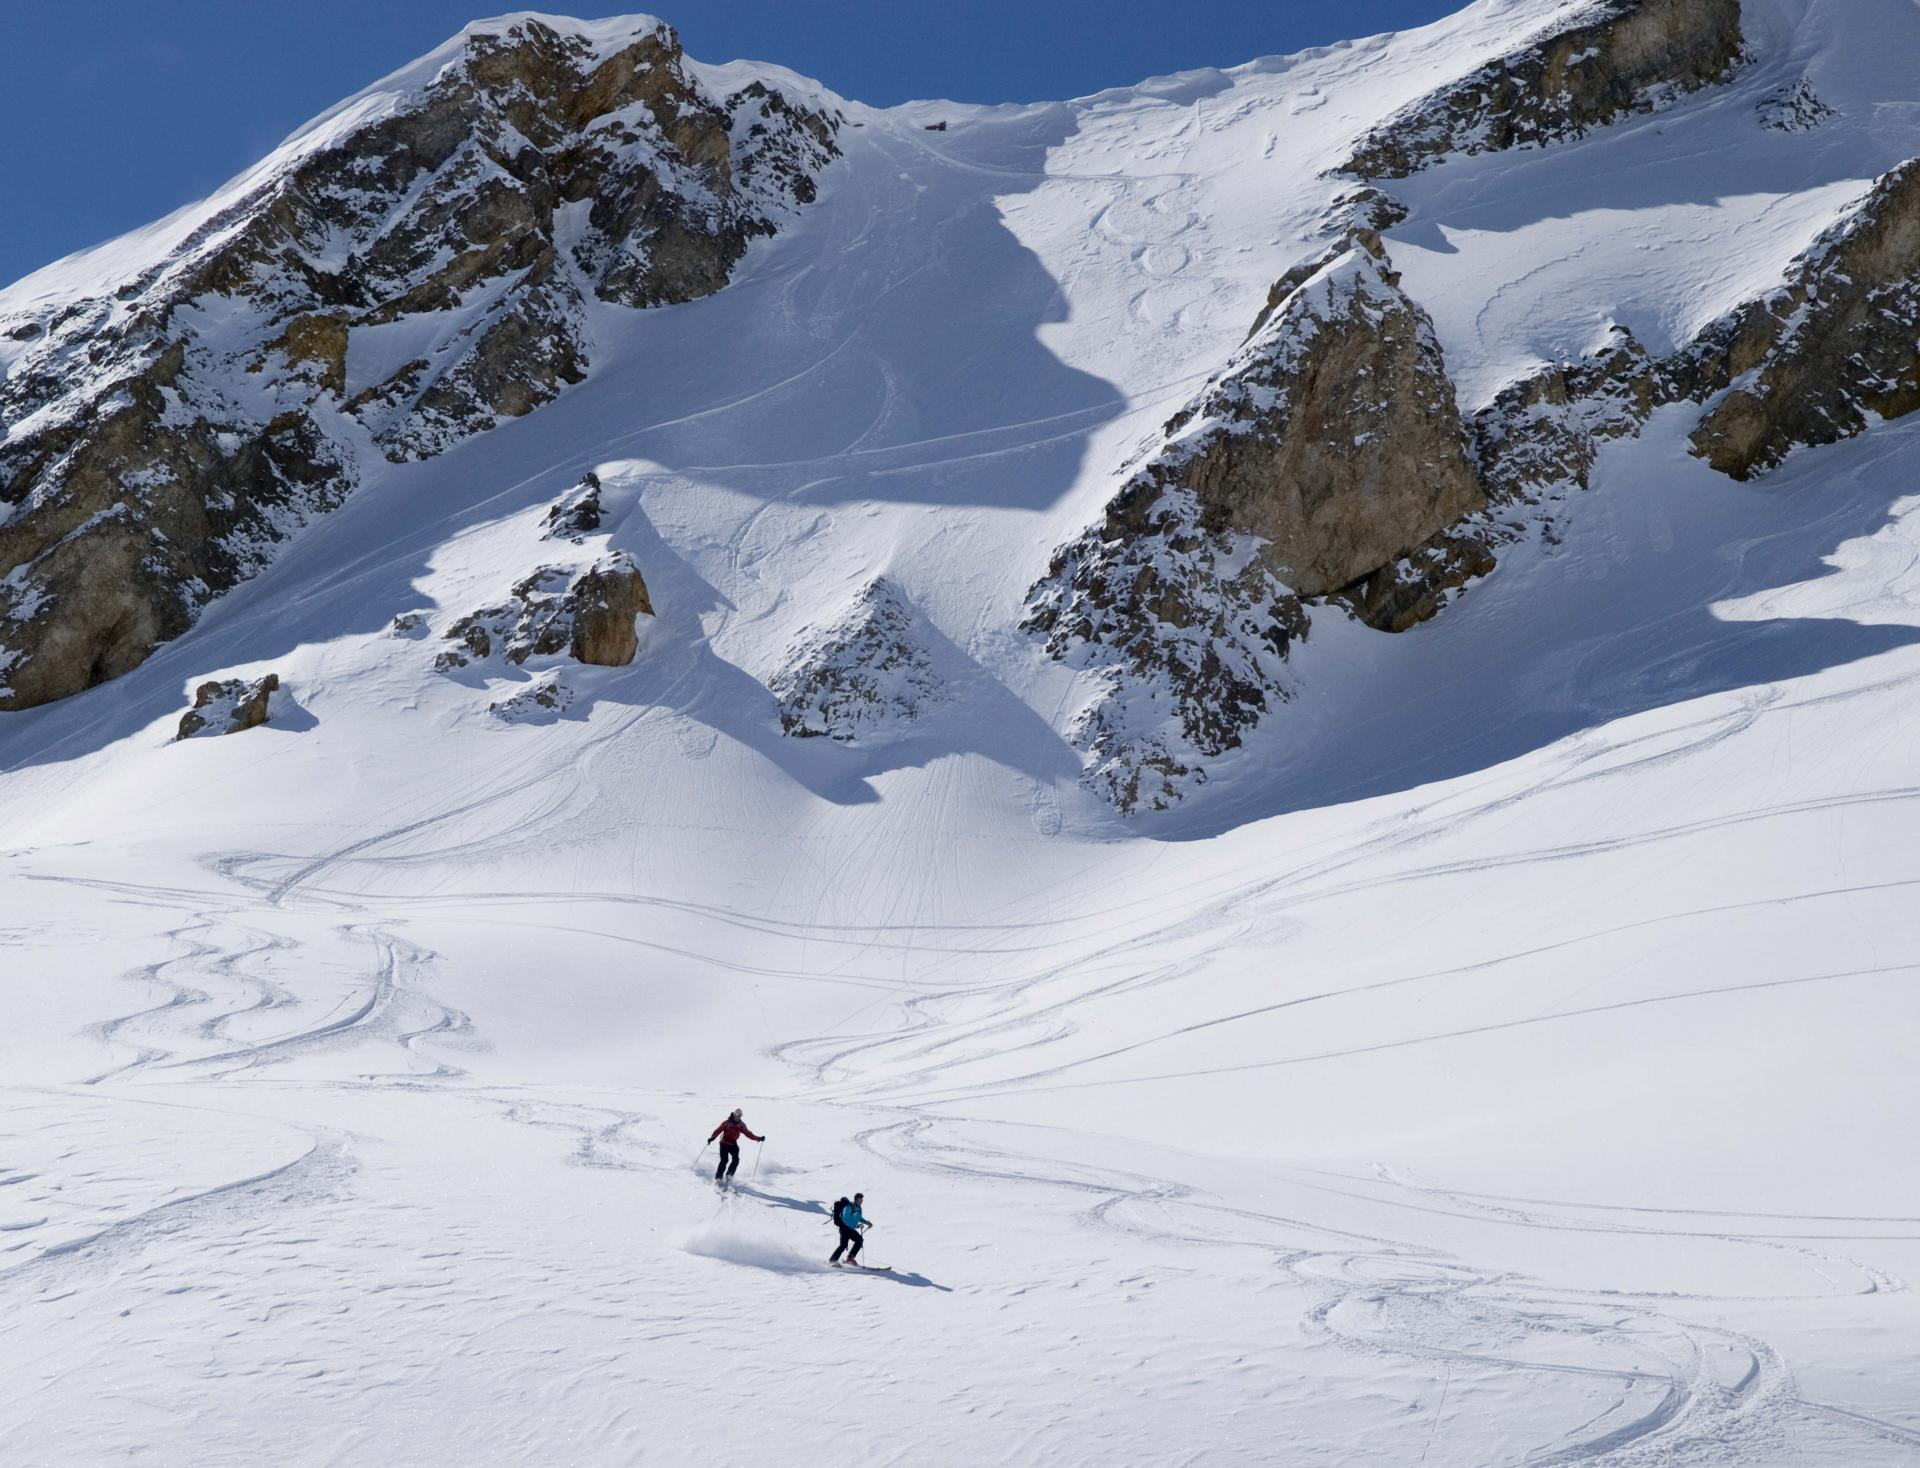 Making fresh tracks on skis in the Maurienne Valley, France